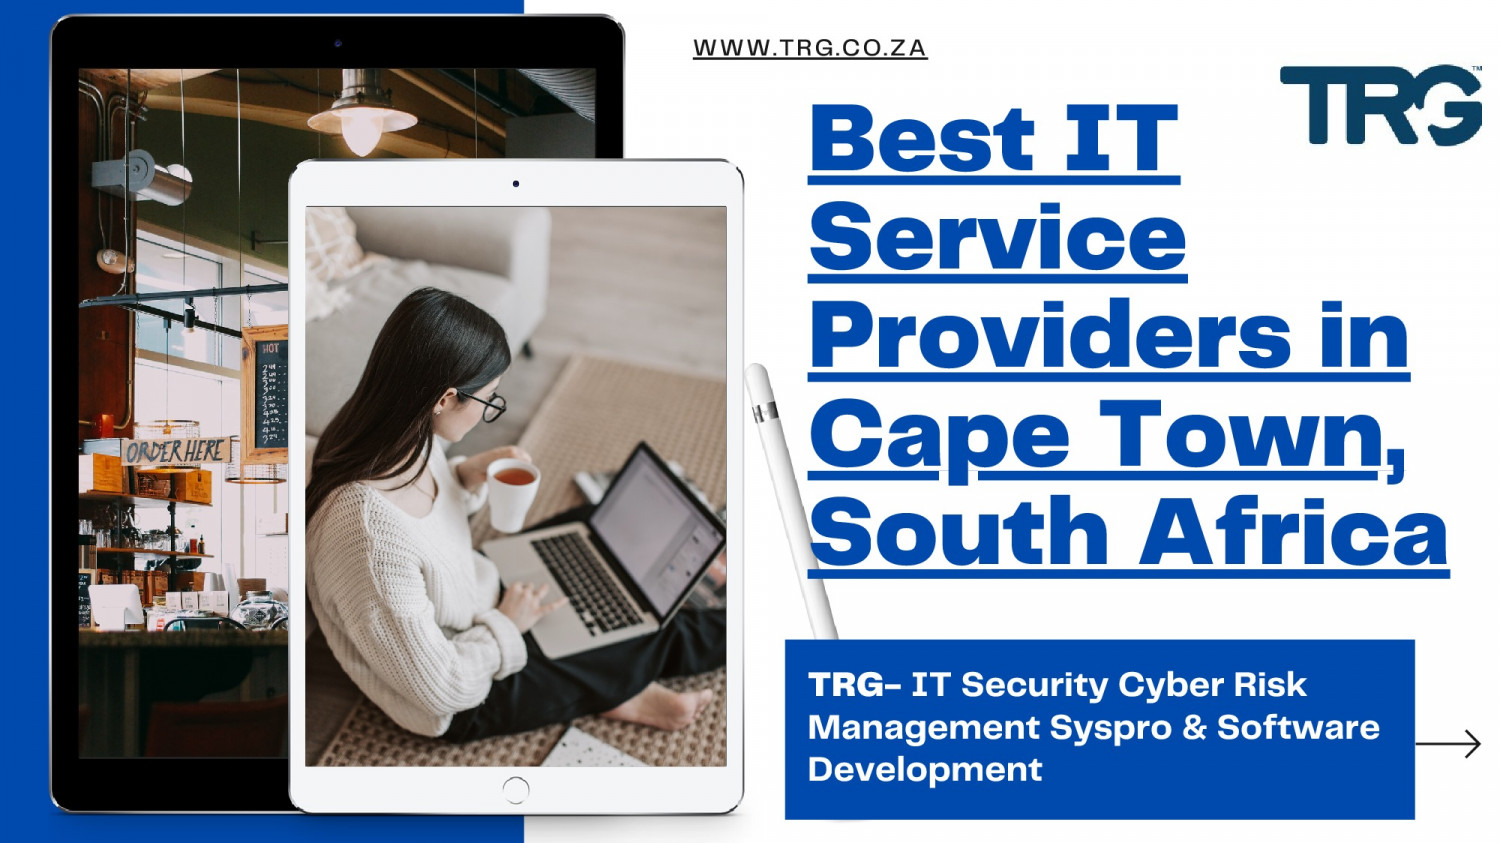 Best IT Service Providers in Cape Town, South Africa Infographic